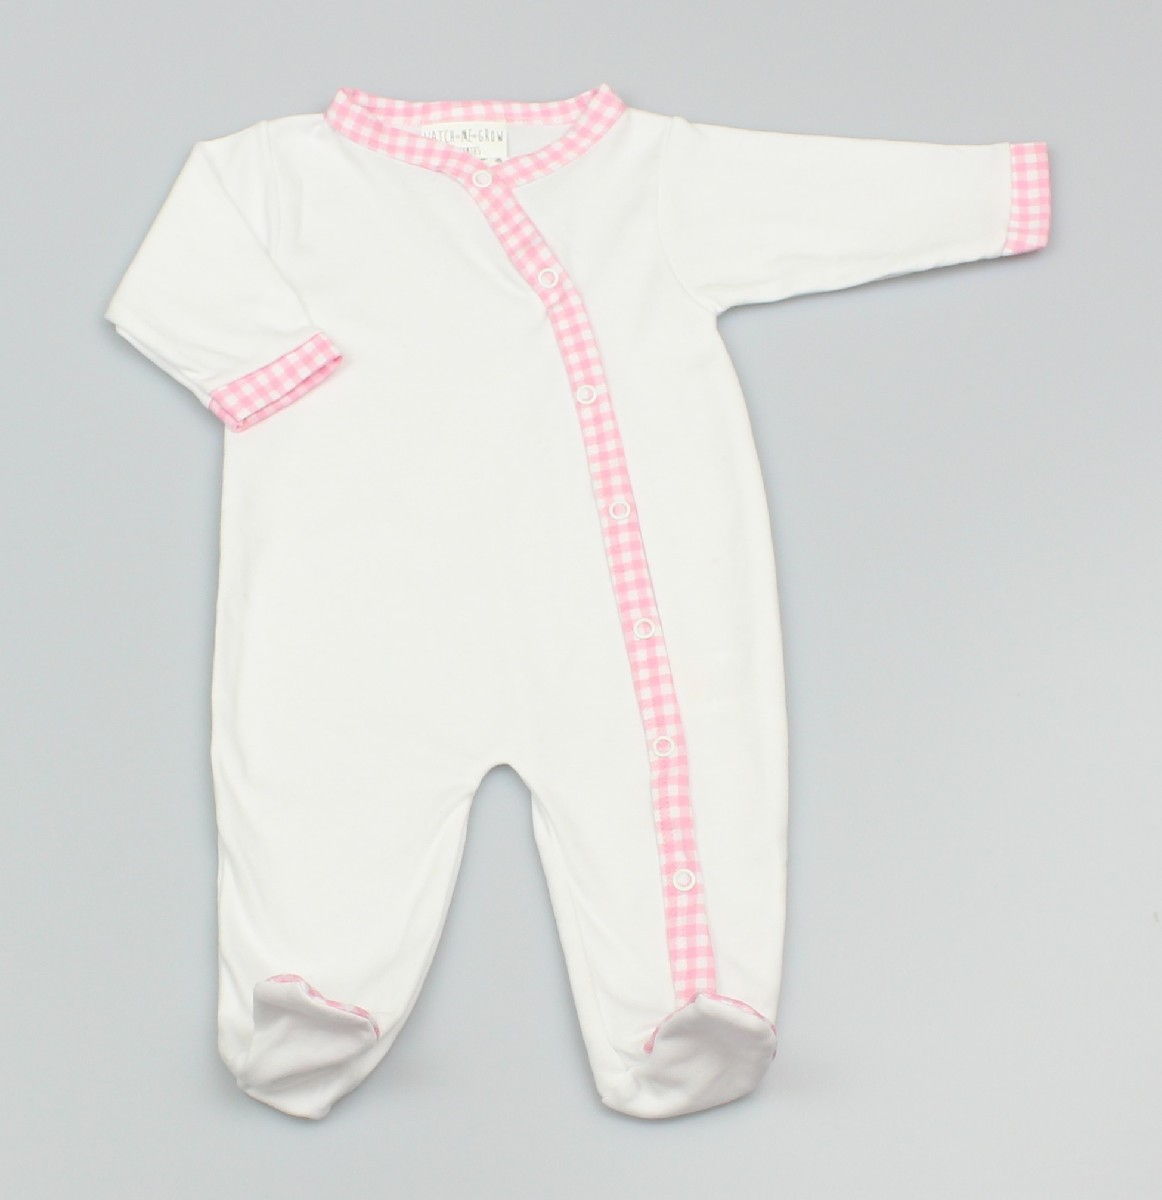 Baby Cotton Sleepsuit - White/Pink